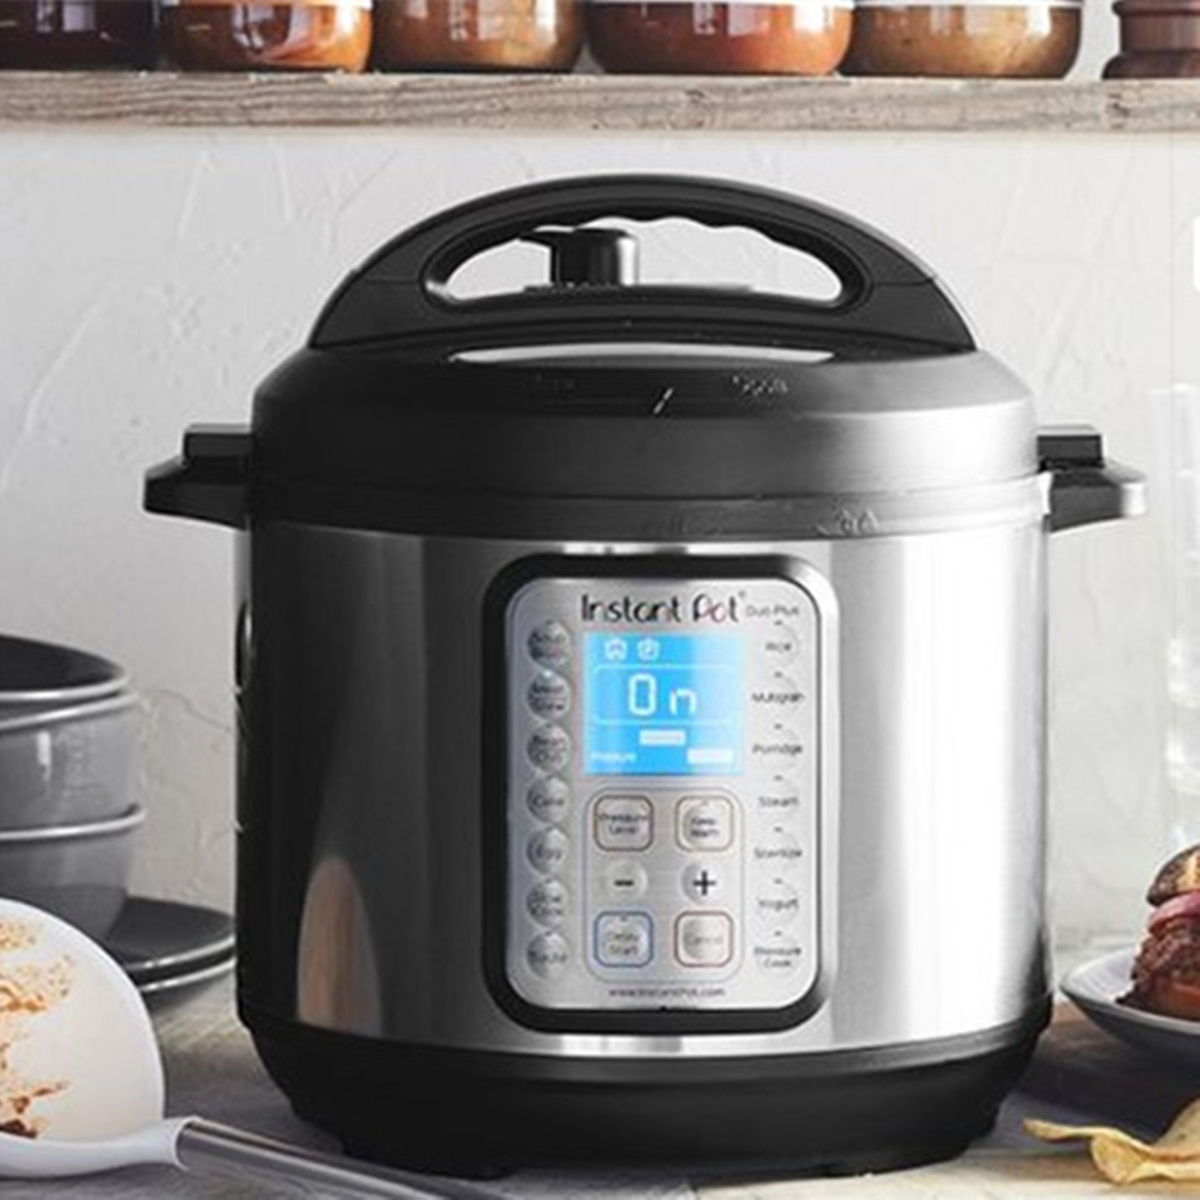 304 Stainless Steel Steam Steamer with Handle For Instant Pot Rice Pressure Cooker